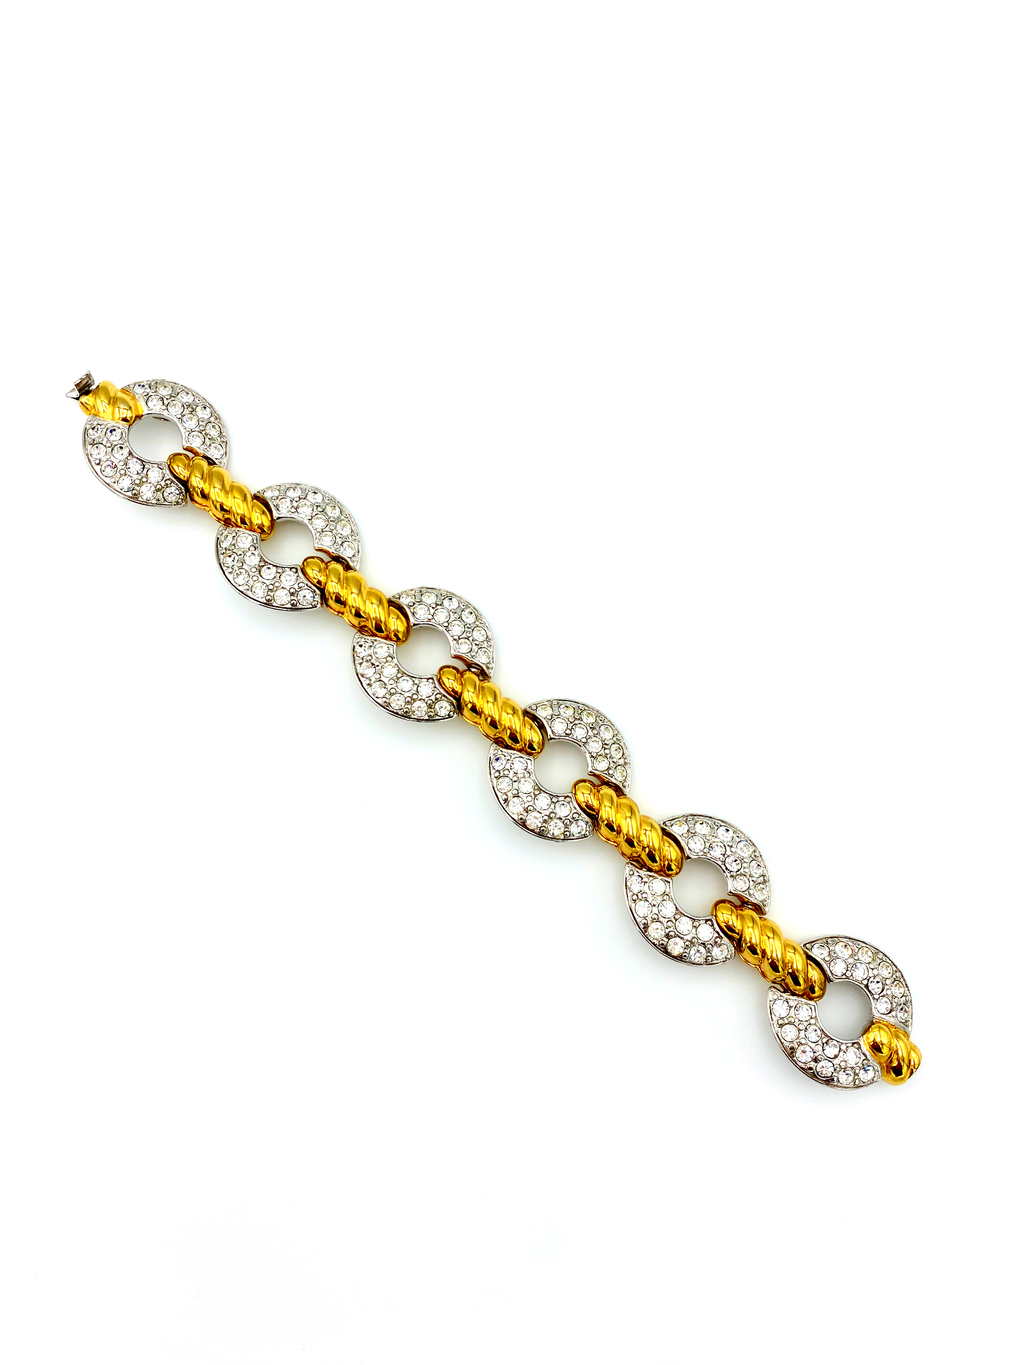 Nolan Miller Classic Gold & Silver Rhinestone Vintage Bracelet-Sustainable Fashion with Vintage Style-Trending Designer Fashion-24 Wishes